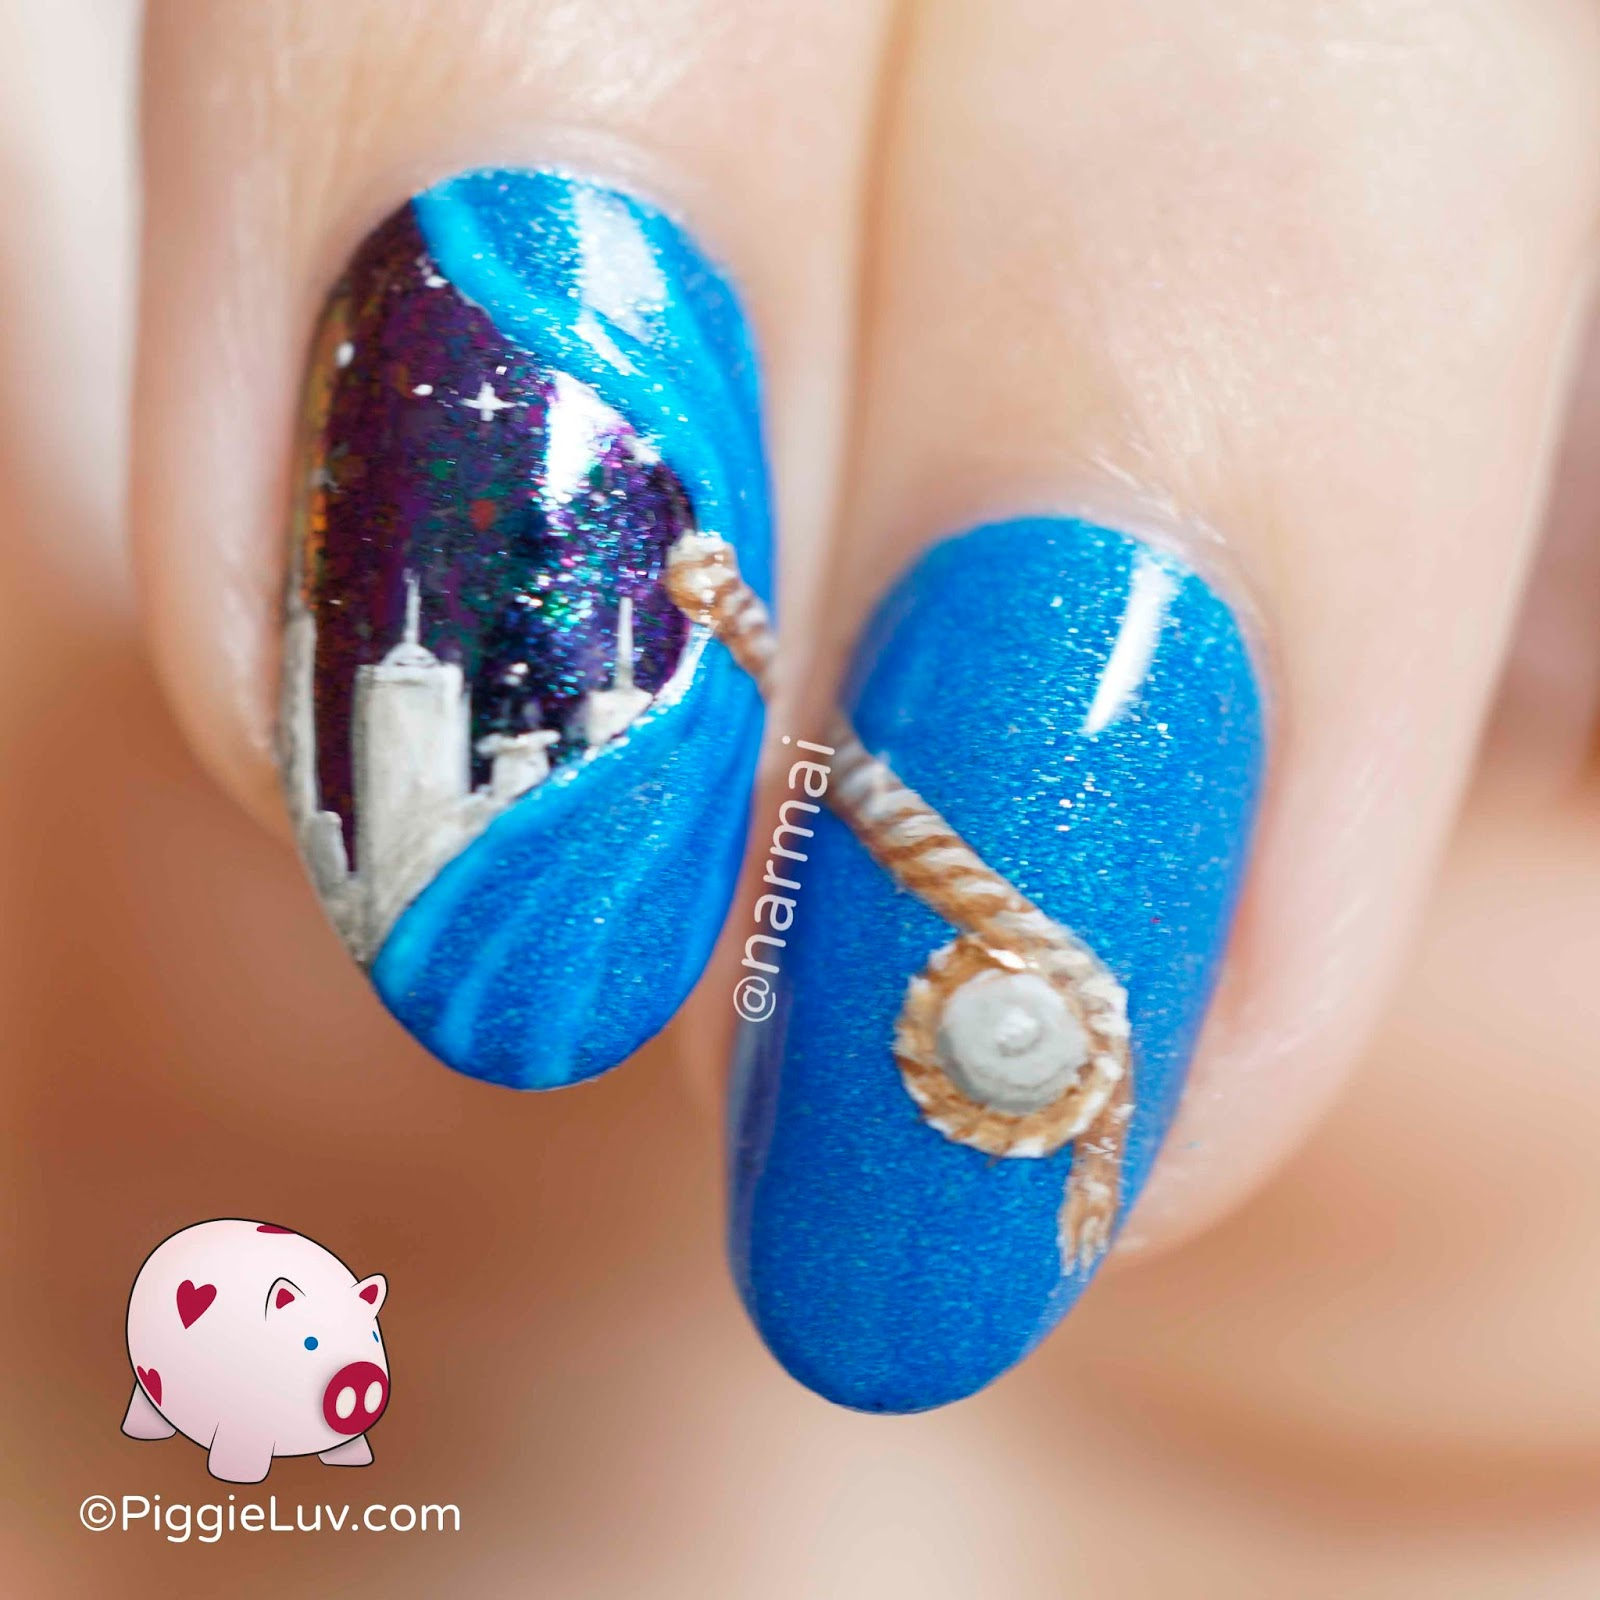 Piggieluv 3d Pull The Curtain Nail Art: PiggieLuv: Into Another Dimension Nail Art